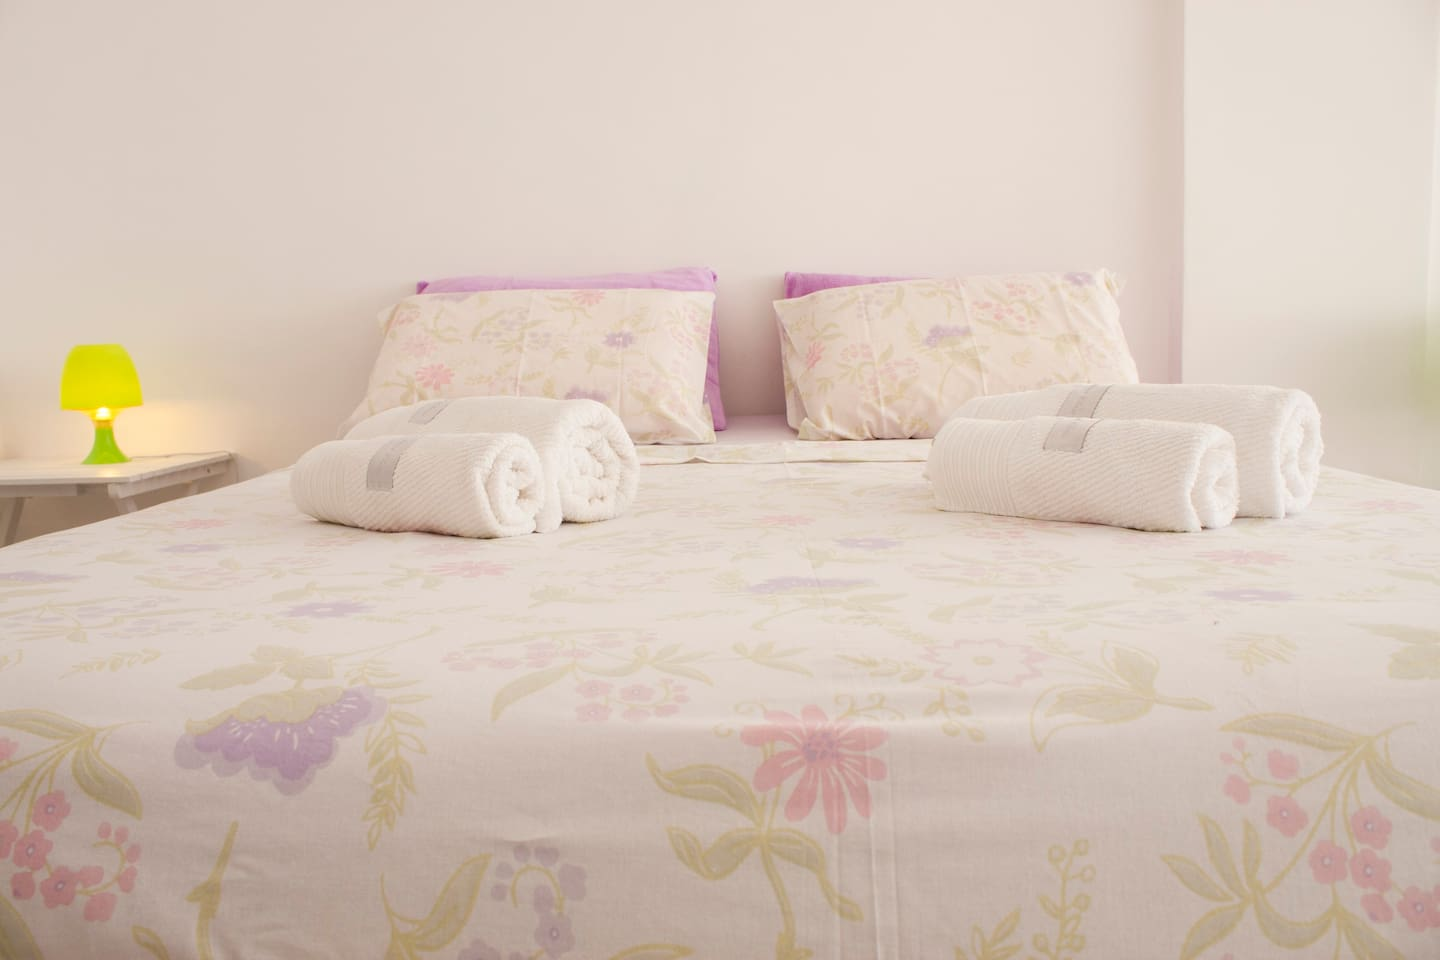 Queen size (1,58 x 1,98) cama/bed